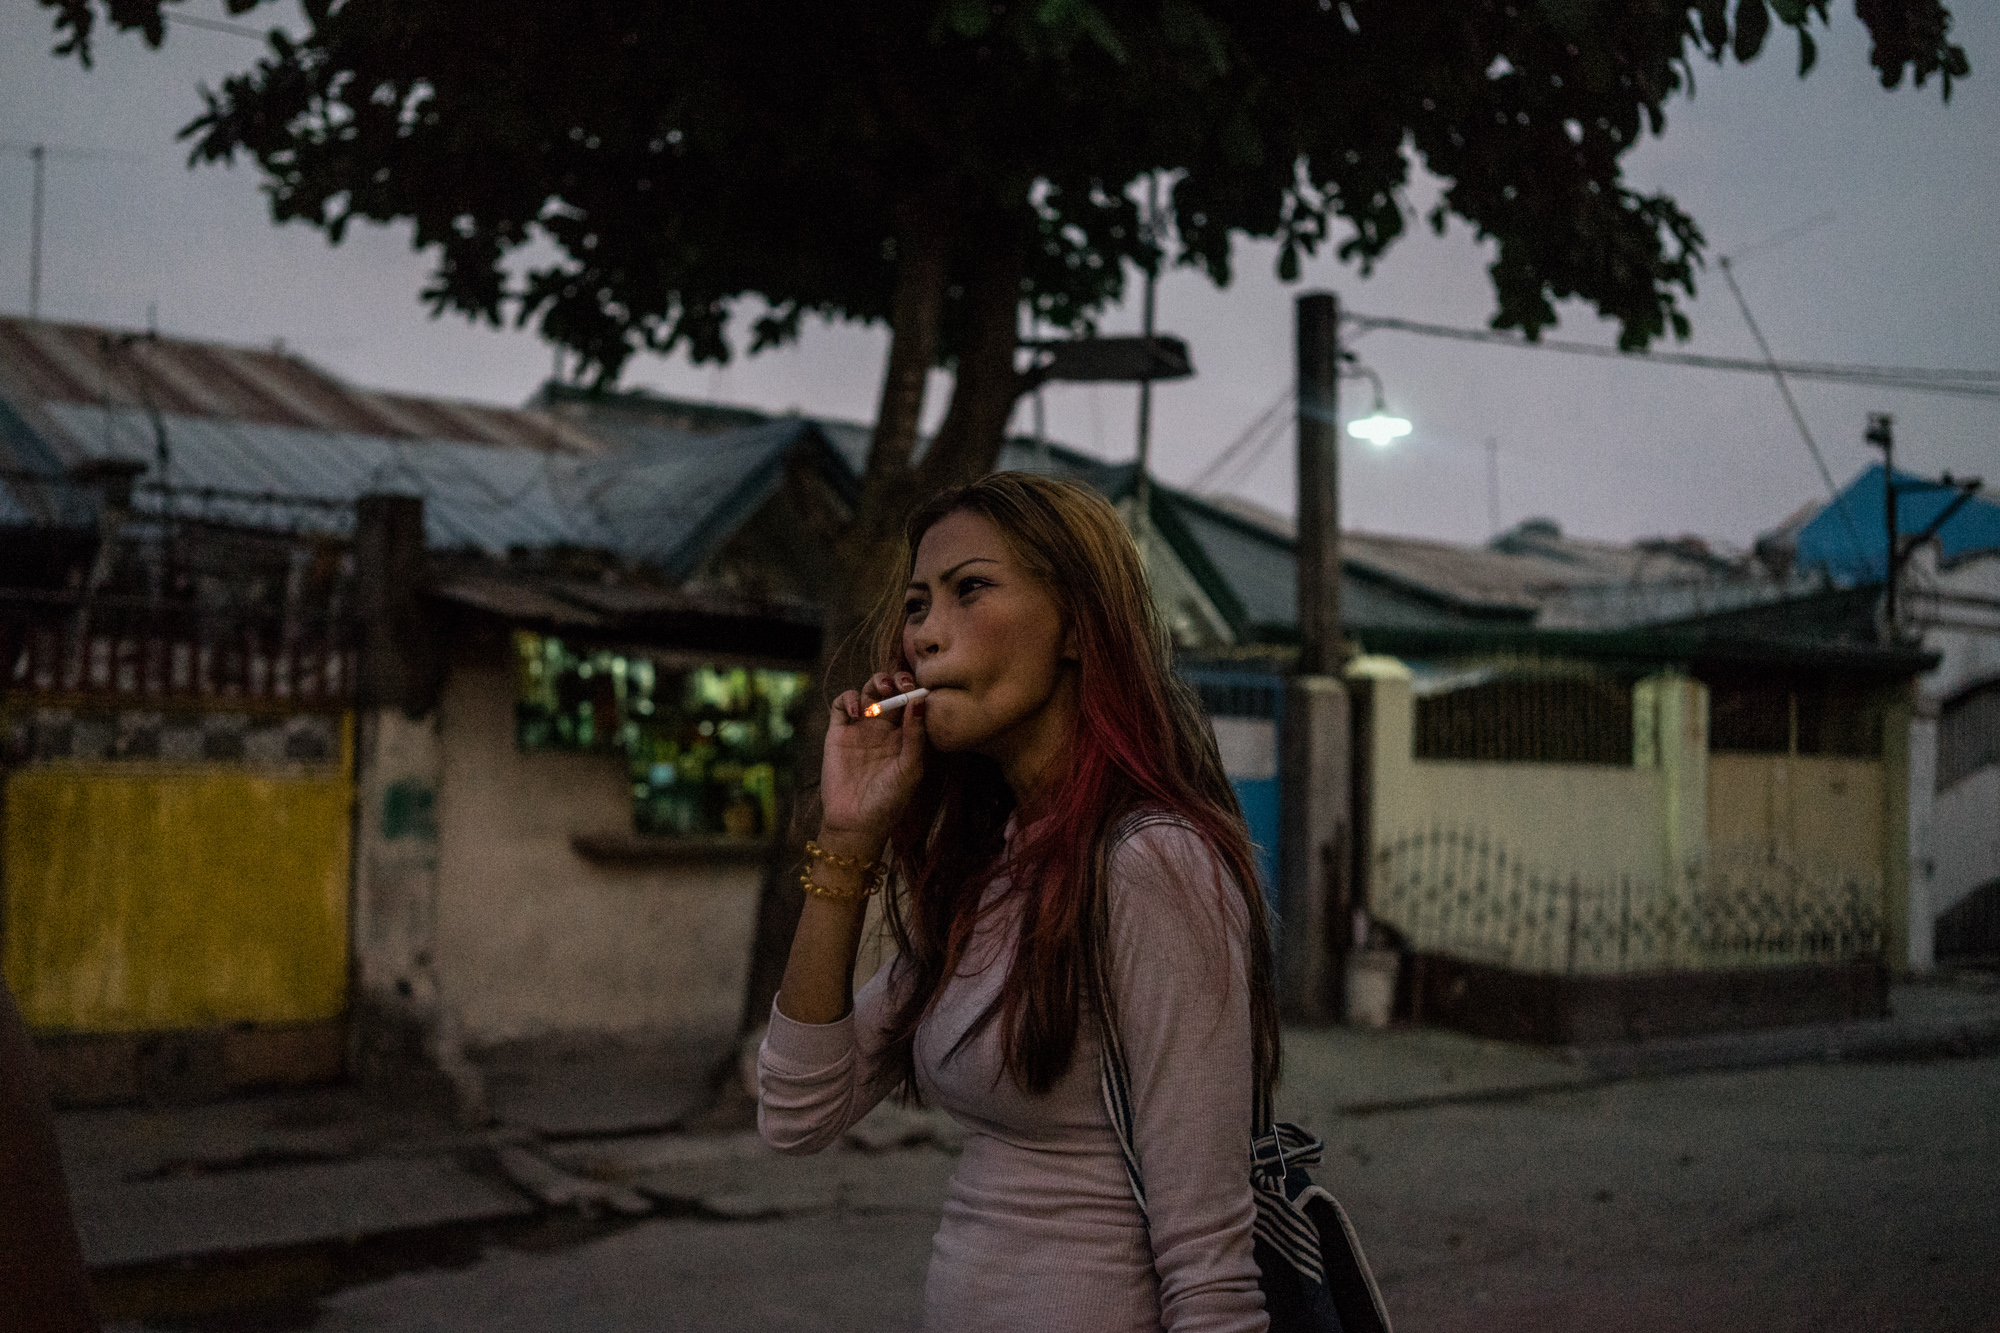 Jojo smokes while walking to work. (Photo by Hannah Reyes Morales/GroundTruth)